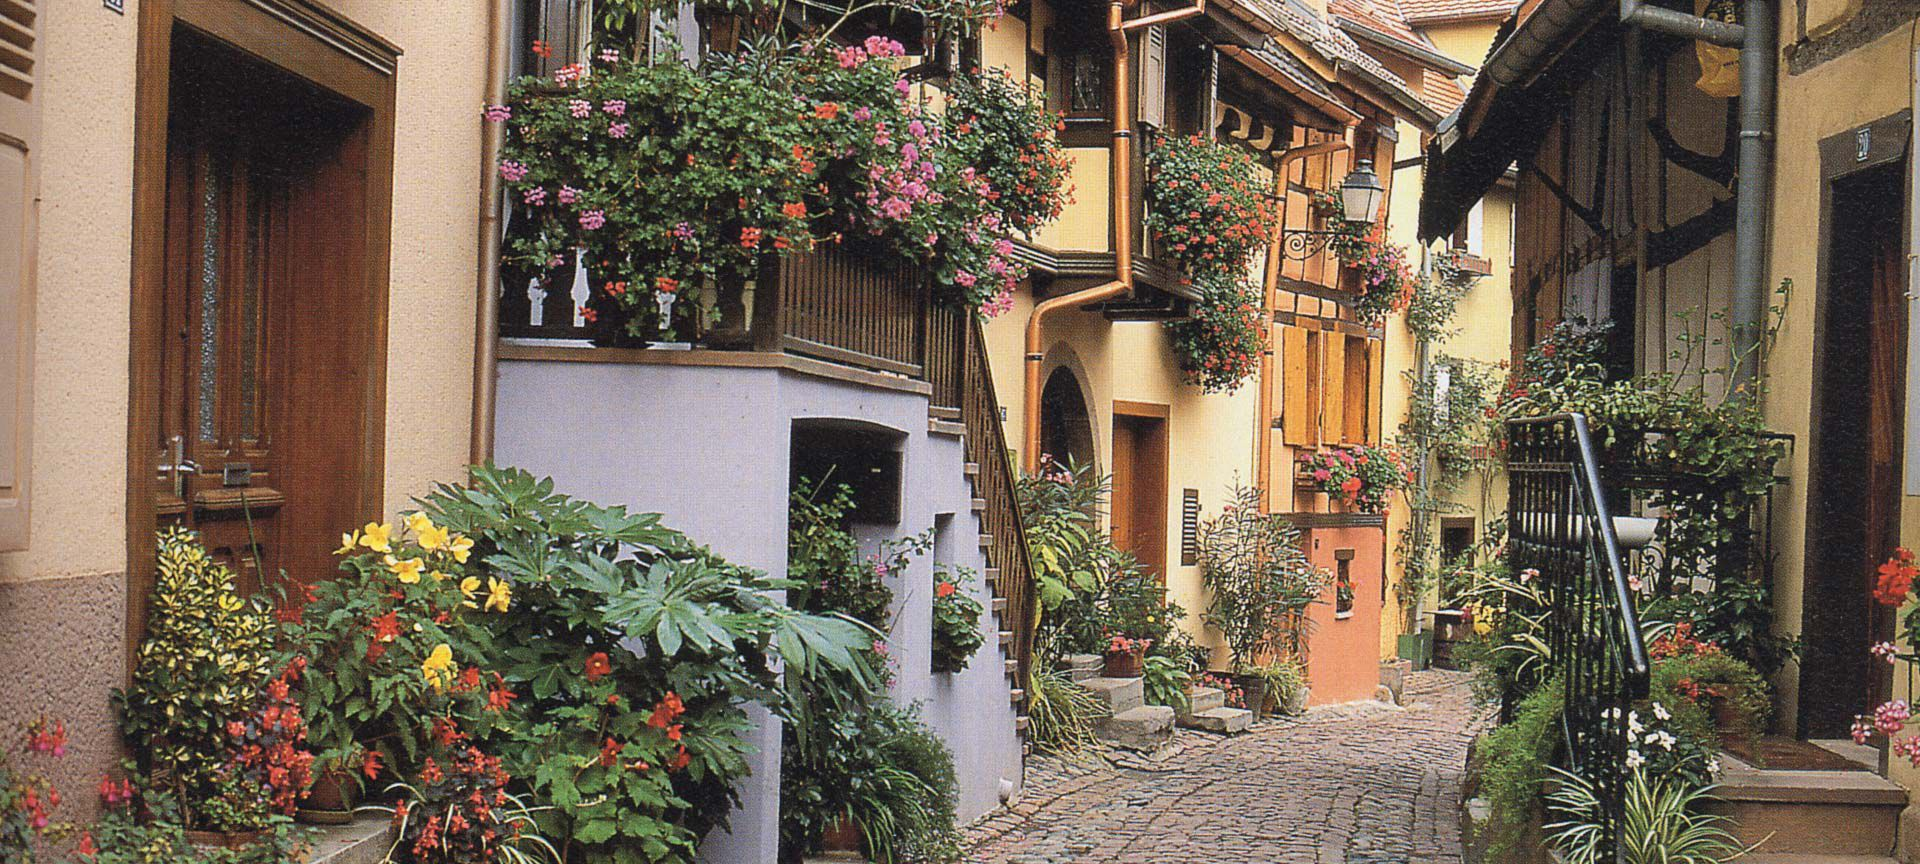 Beatiful pathways of Strasbourg France